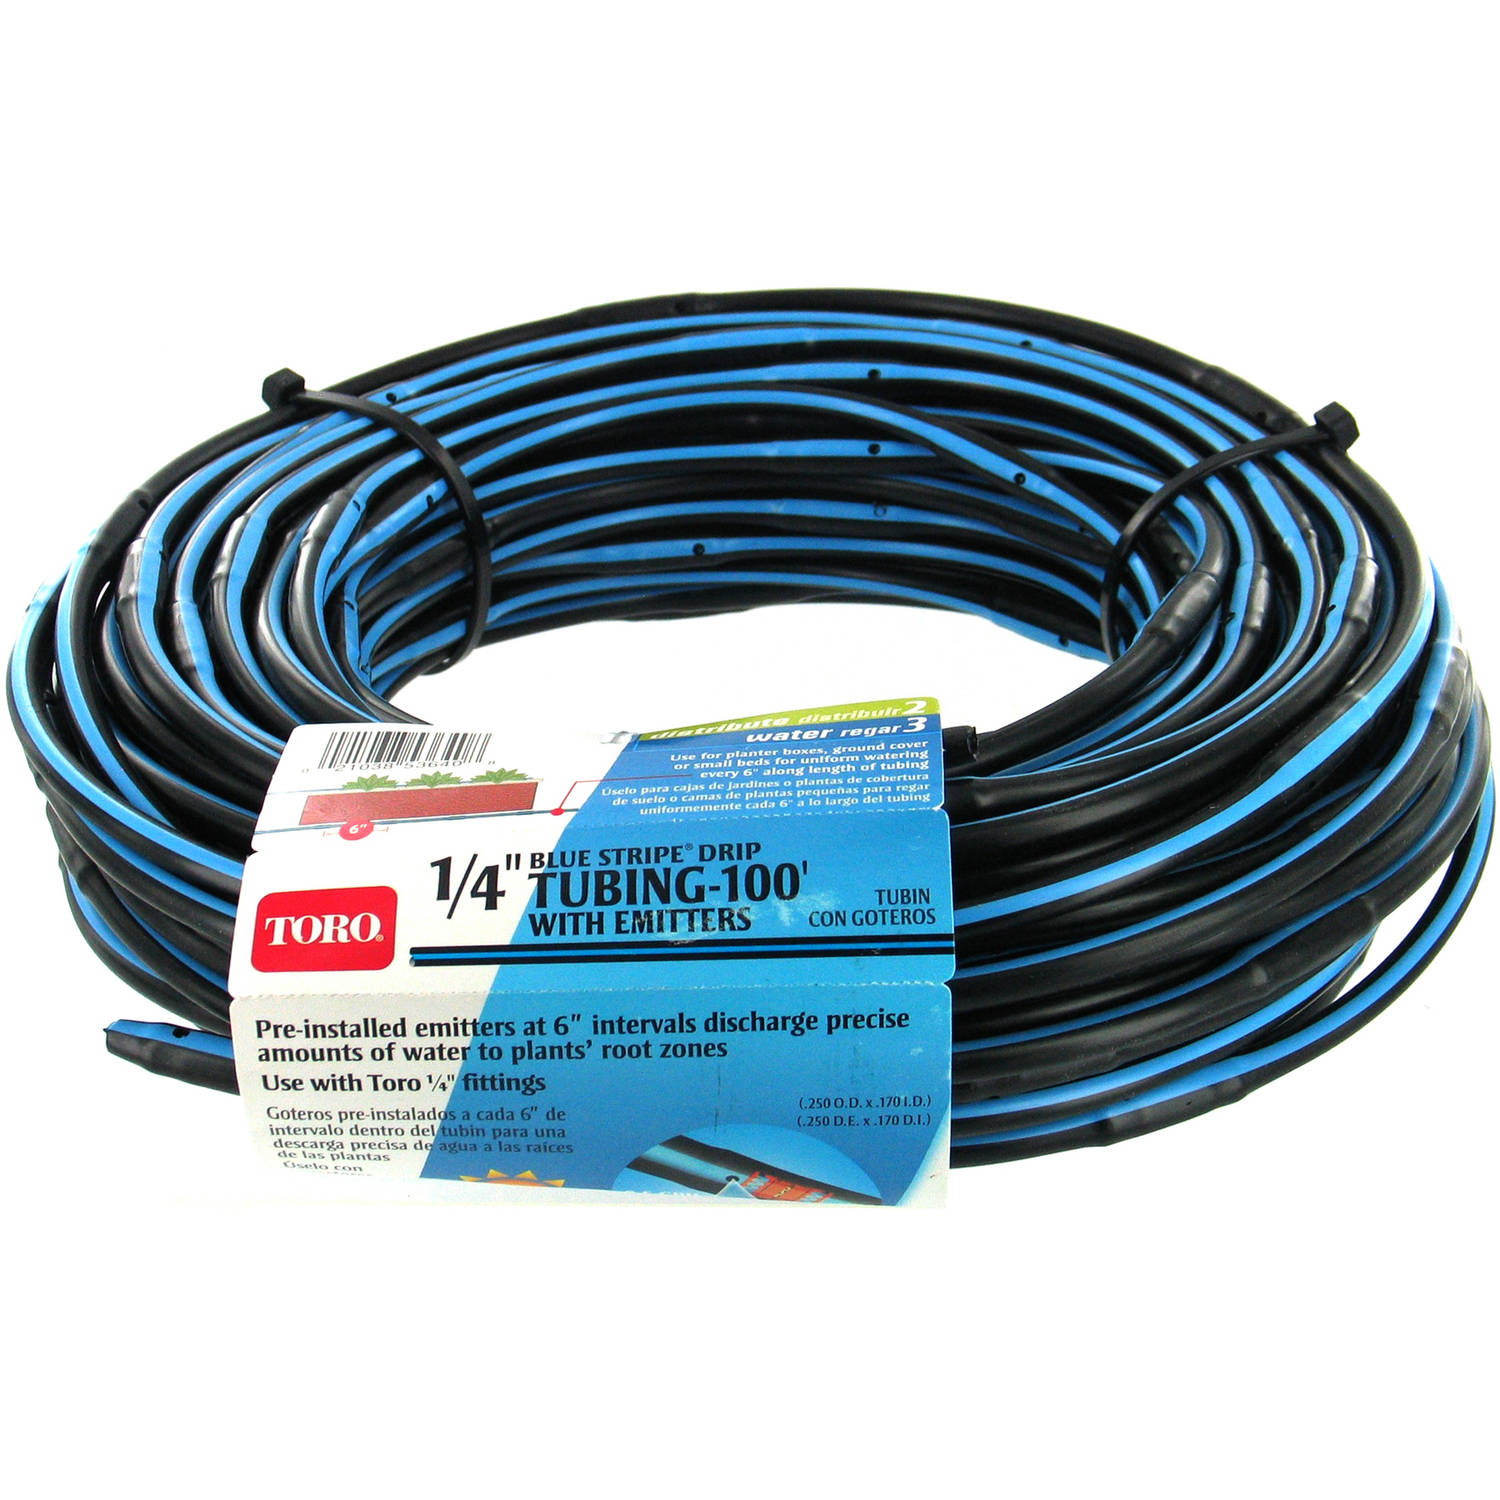 "Toro 53640 100' Roll 1/4"" Blue Stripe Drip Tubing with Emitters"